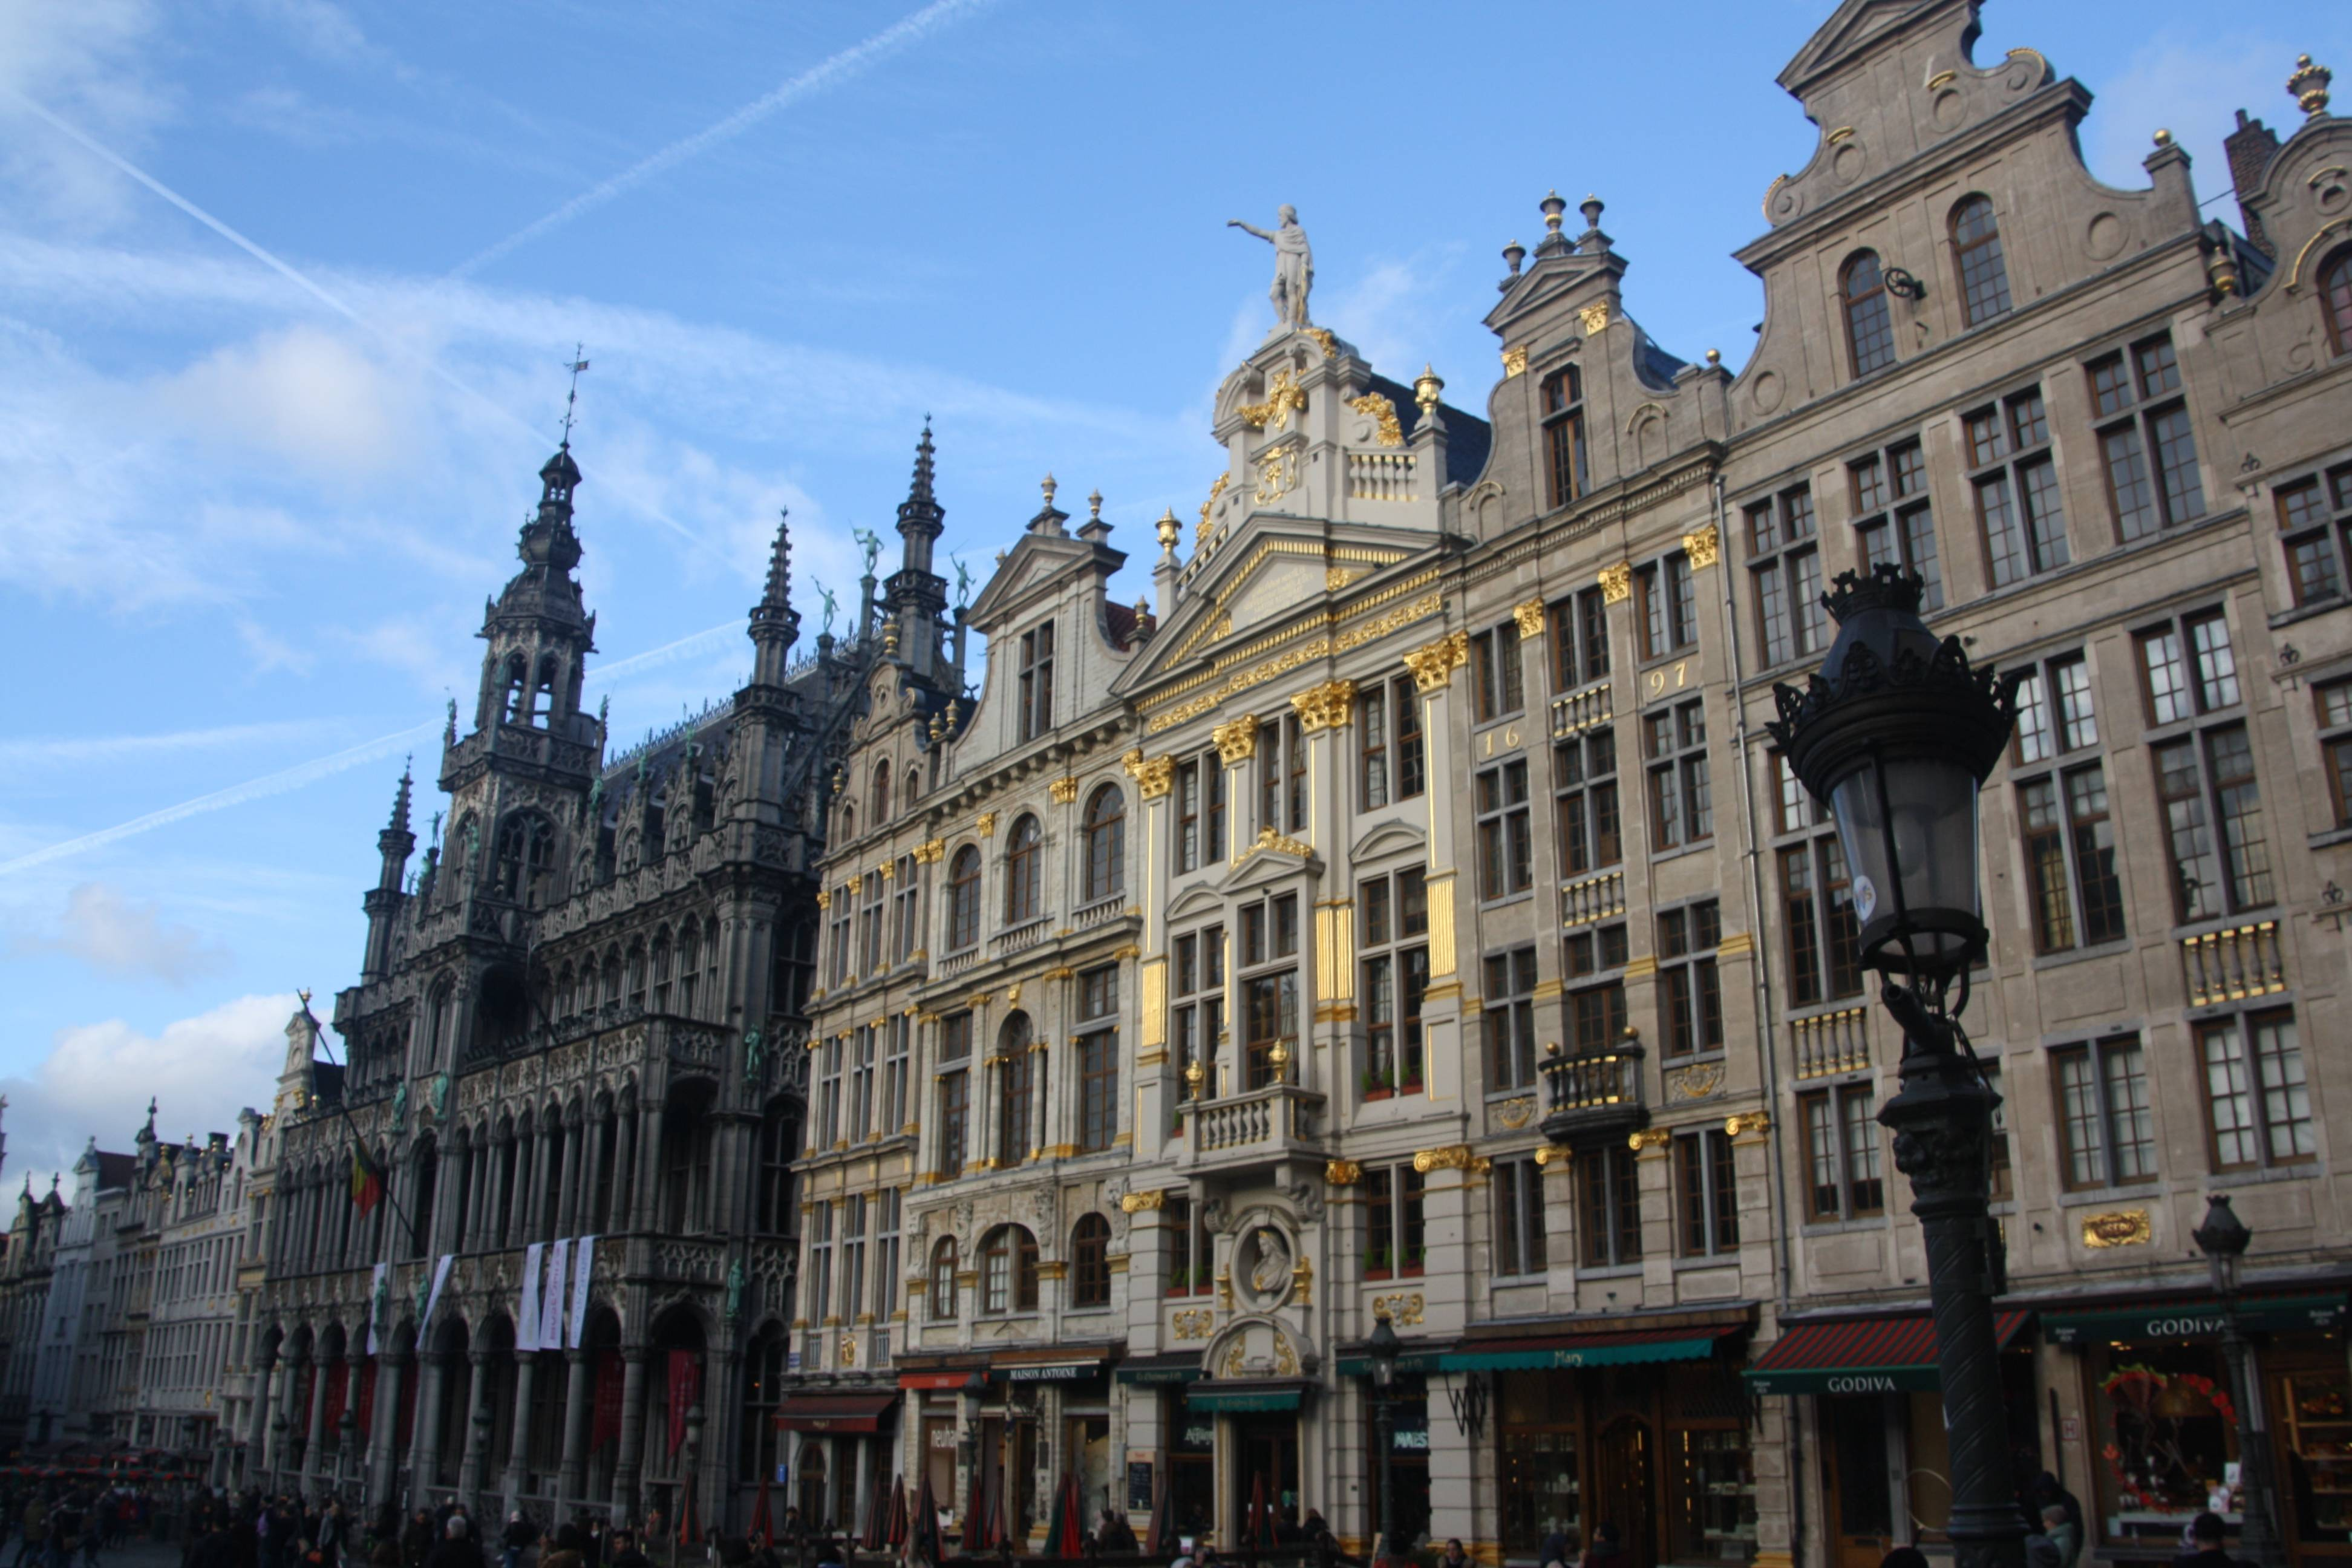 Grote Markt (engl. Grand Place) in Brussels